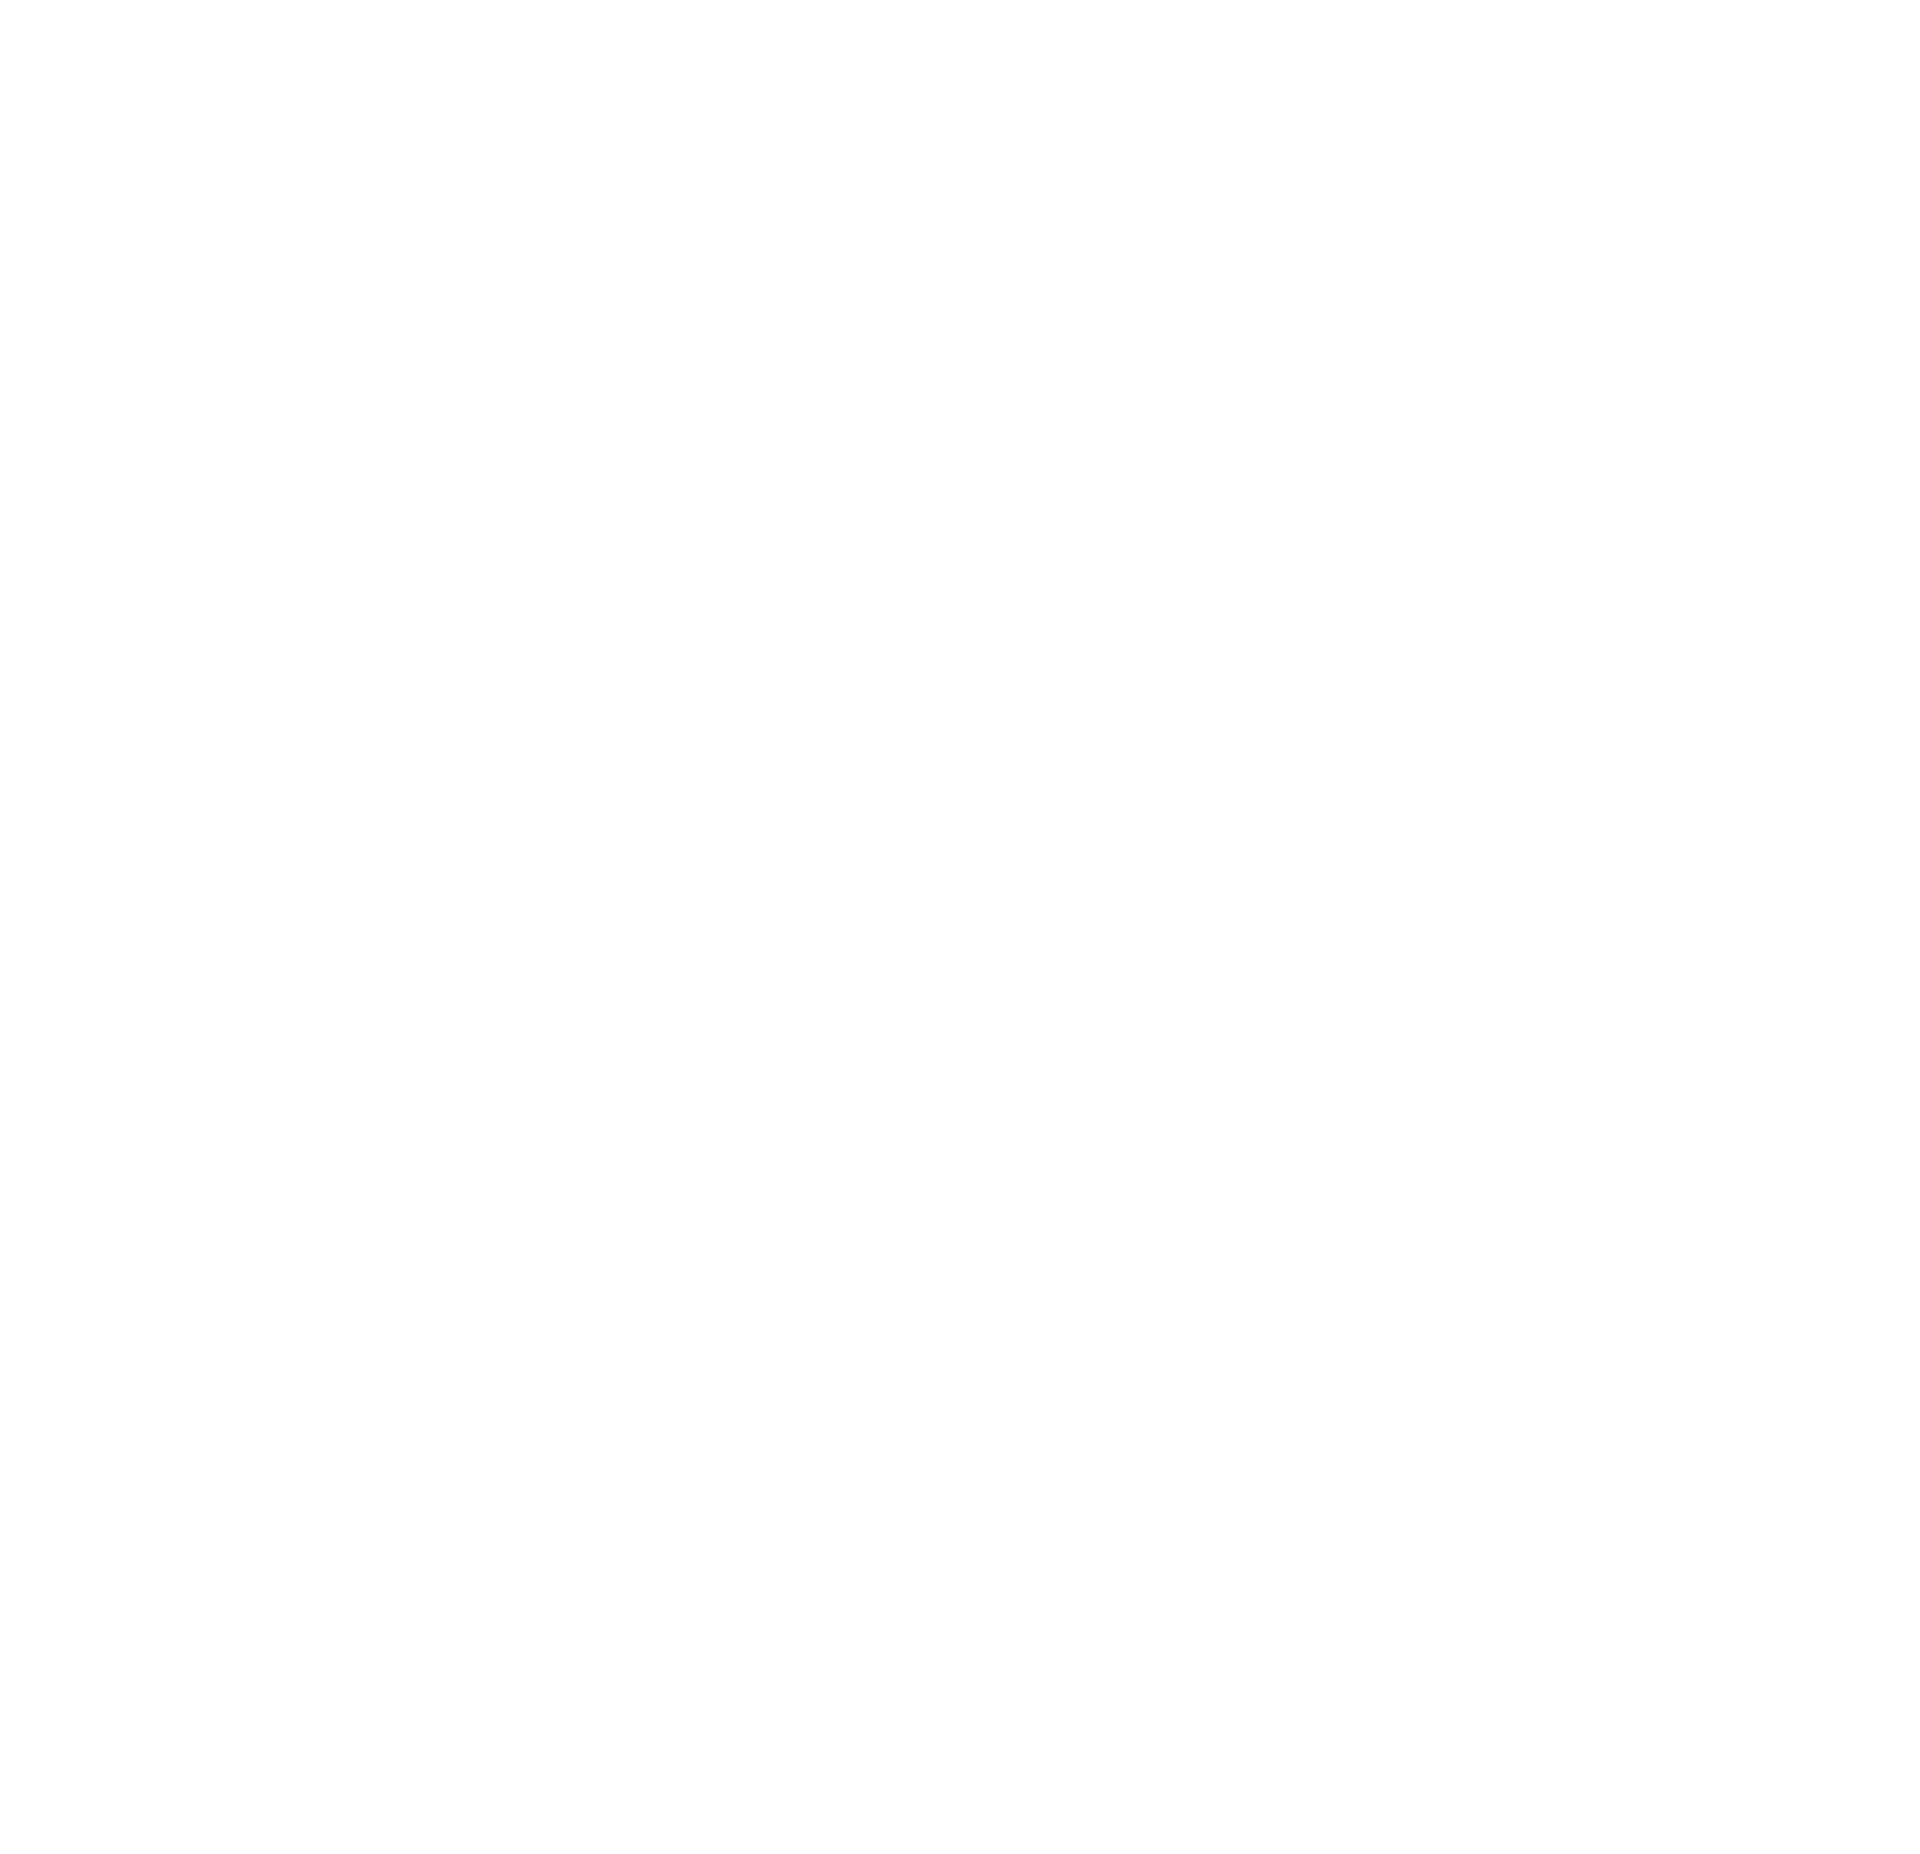 Higgins Funeral Home